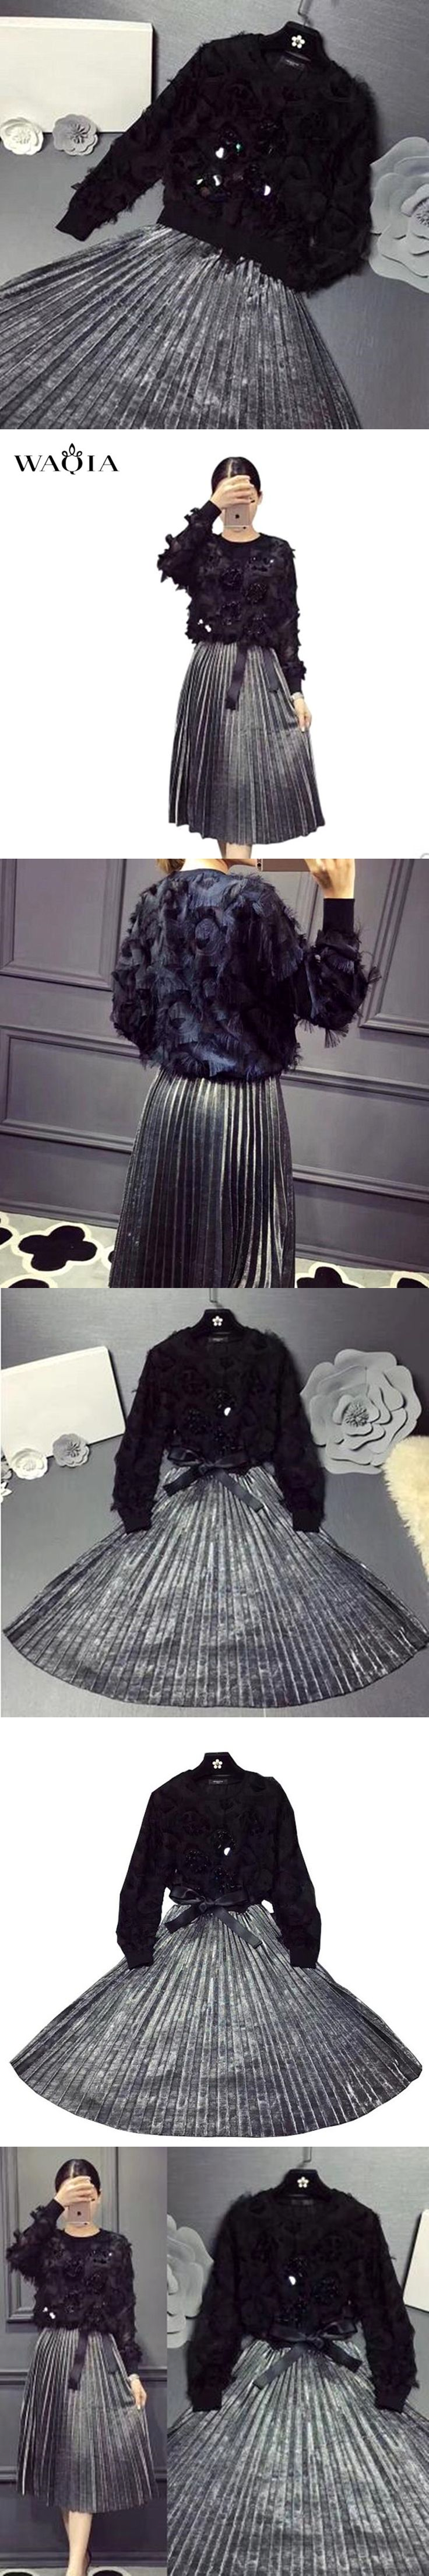 2 pieces set NEW 2017 Women Clothing Set Large Size Spring Autumn Long Sleeve Black Sequins tassel Hoodies+Silver Pleated Skirt